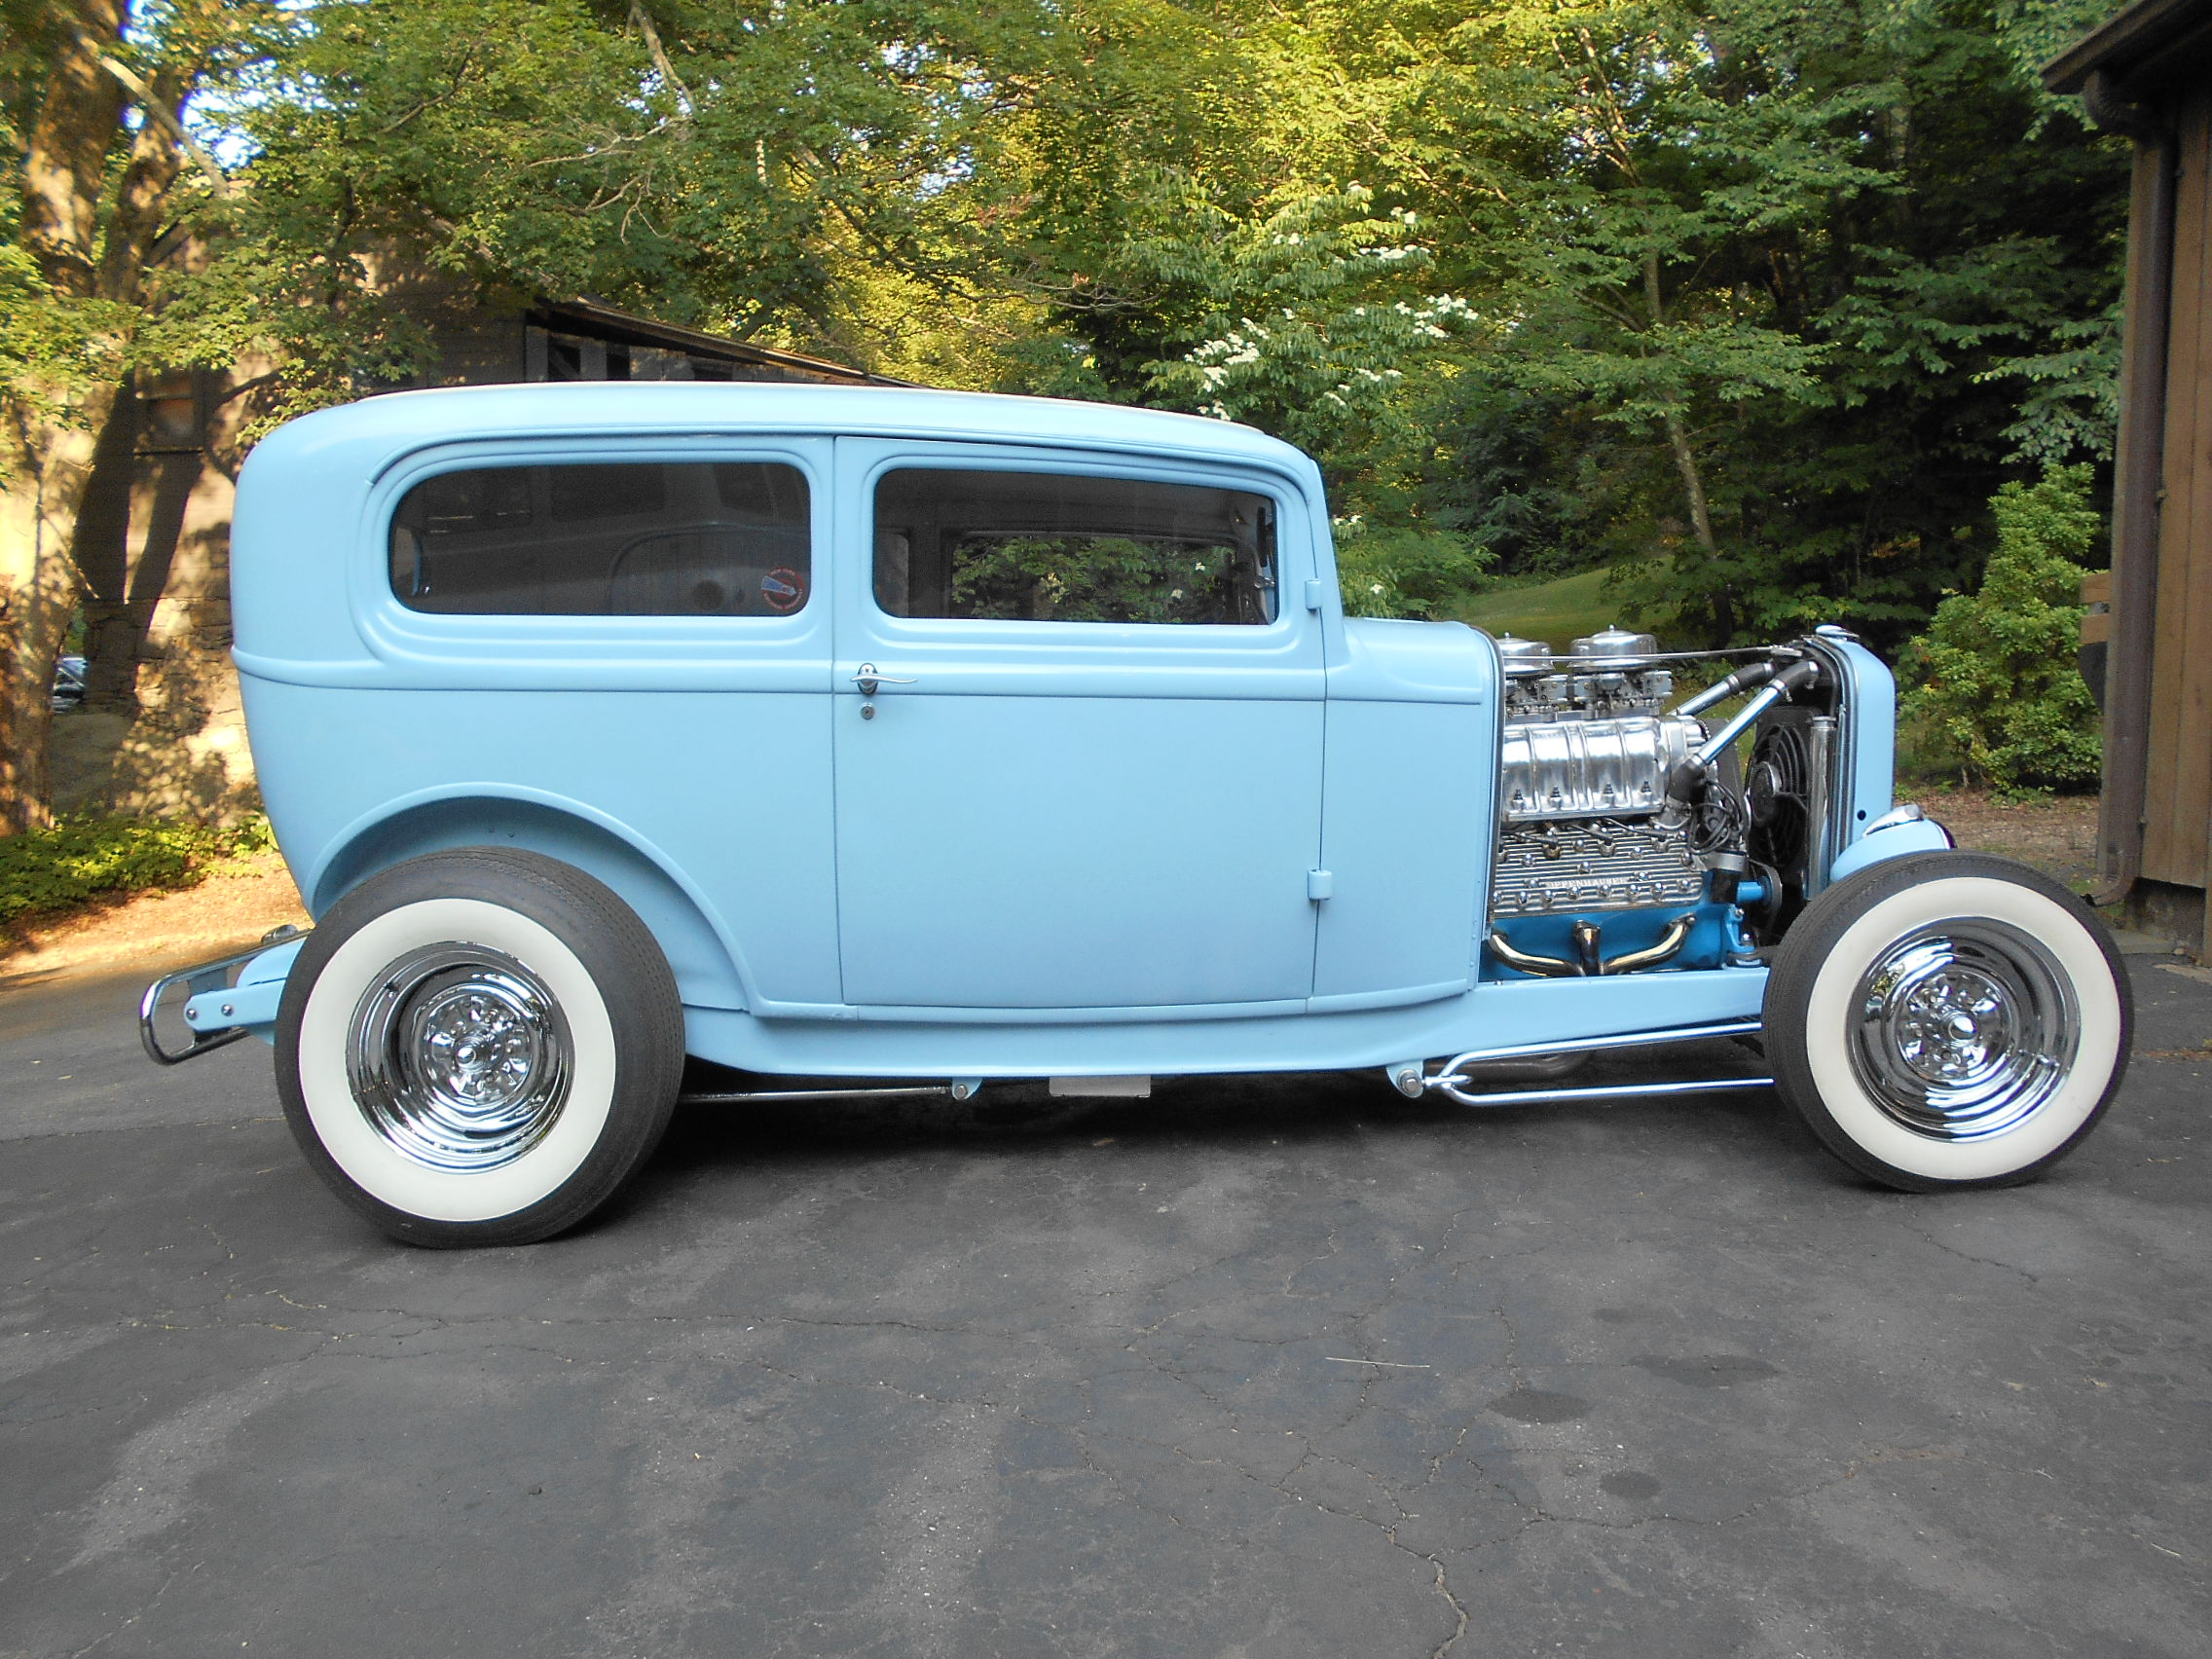 1932 Ford Sedan Supercharged Flathead Mag Feature Car